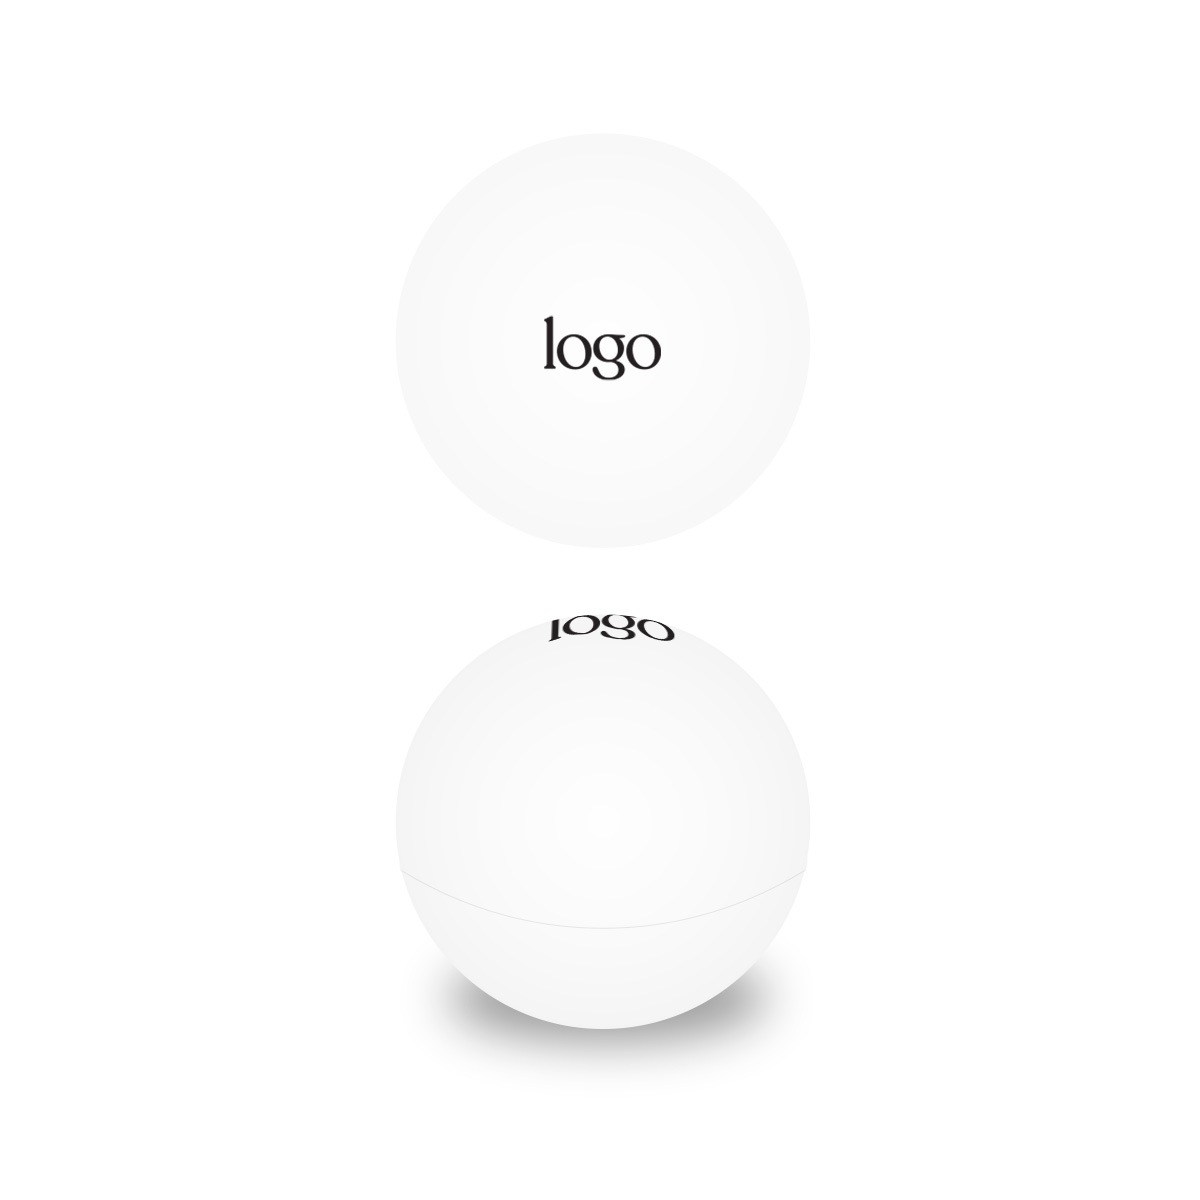 302320 natural lip balm ball one color imprint one location